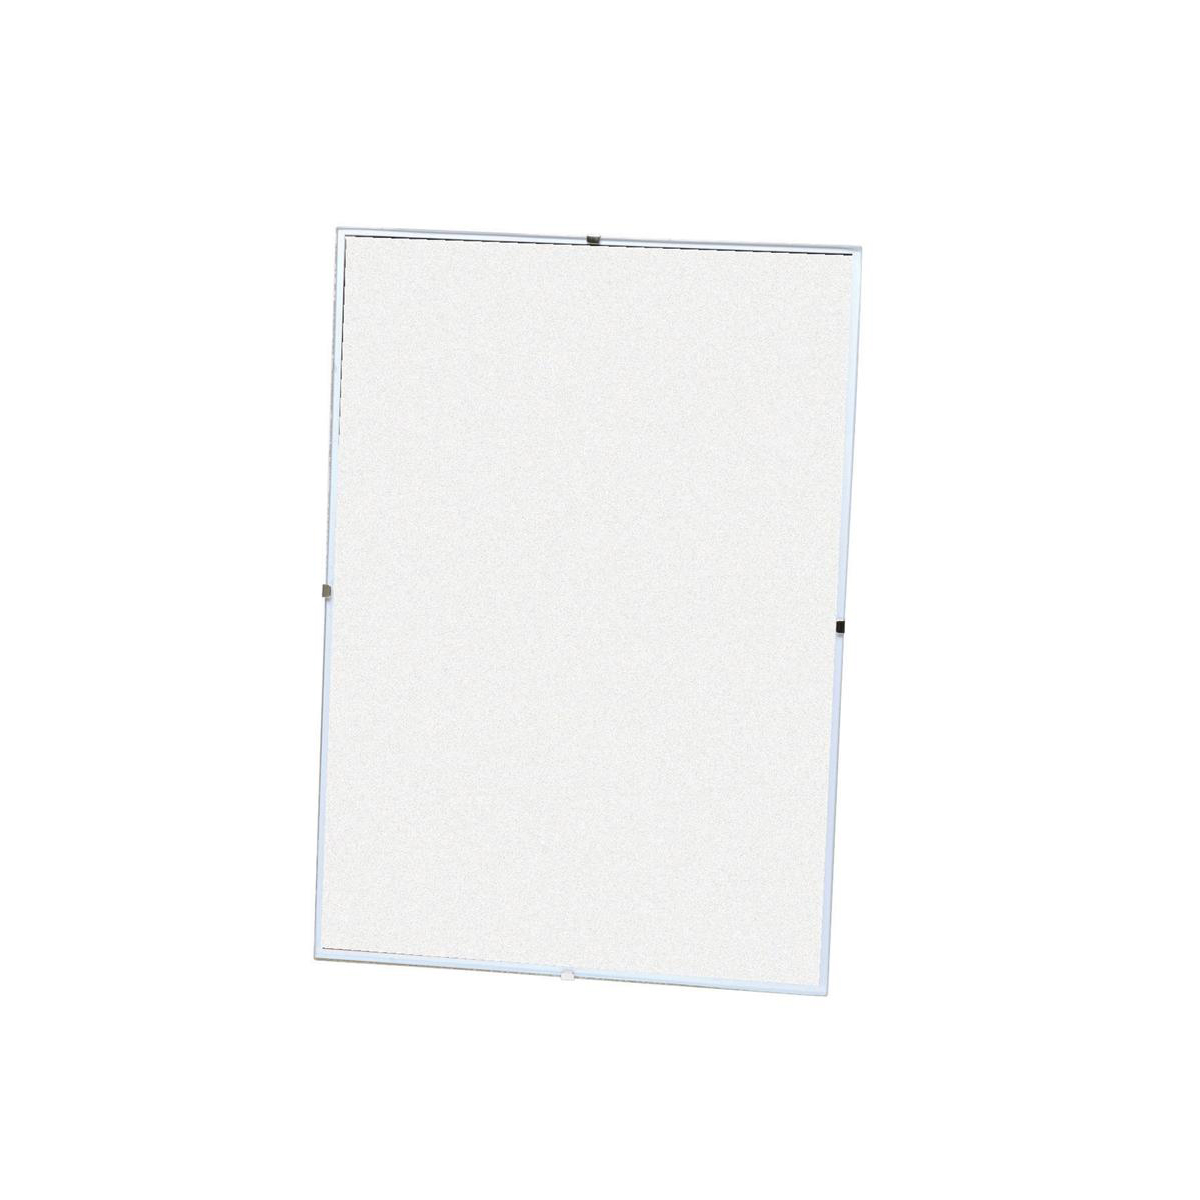 Certificate / Photo Frames 5 Star Office Clip Frame Plastic Front for Wall-mounting Back-loading A4 297x210mm Clear